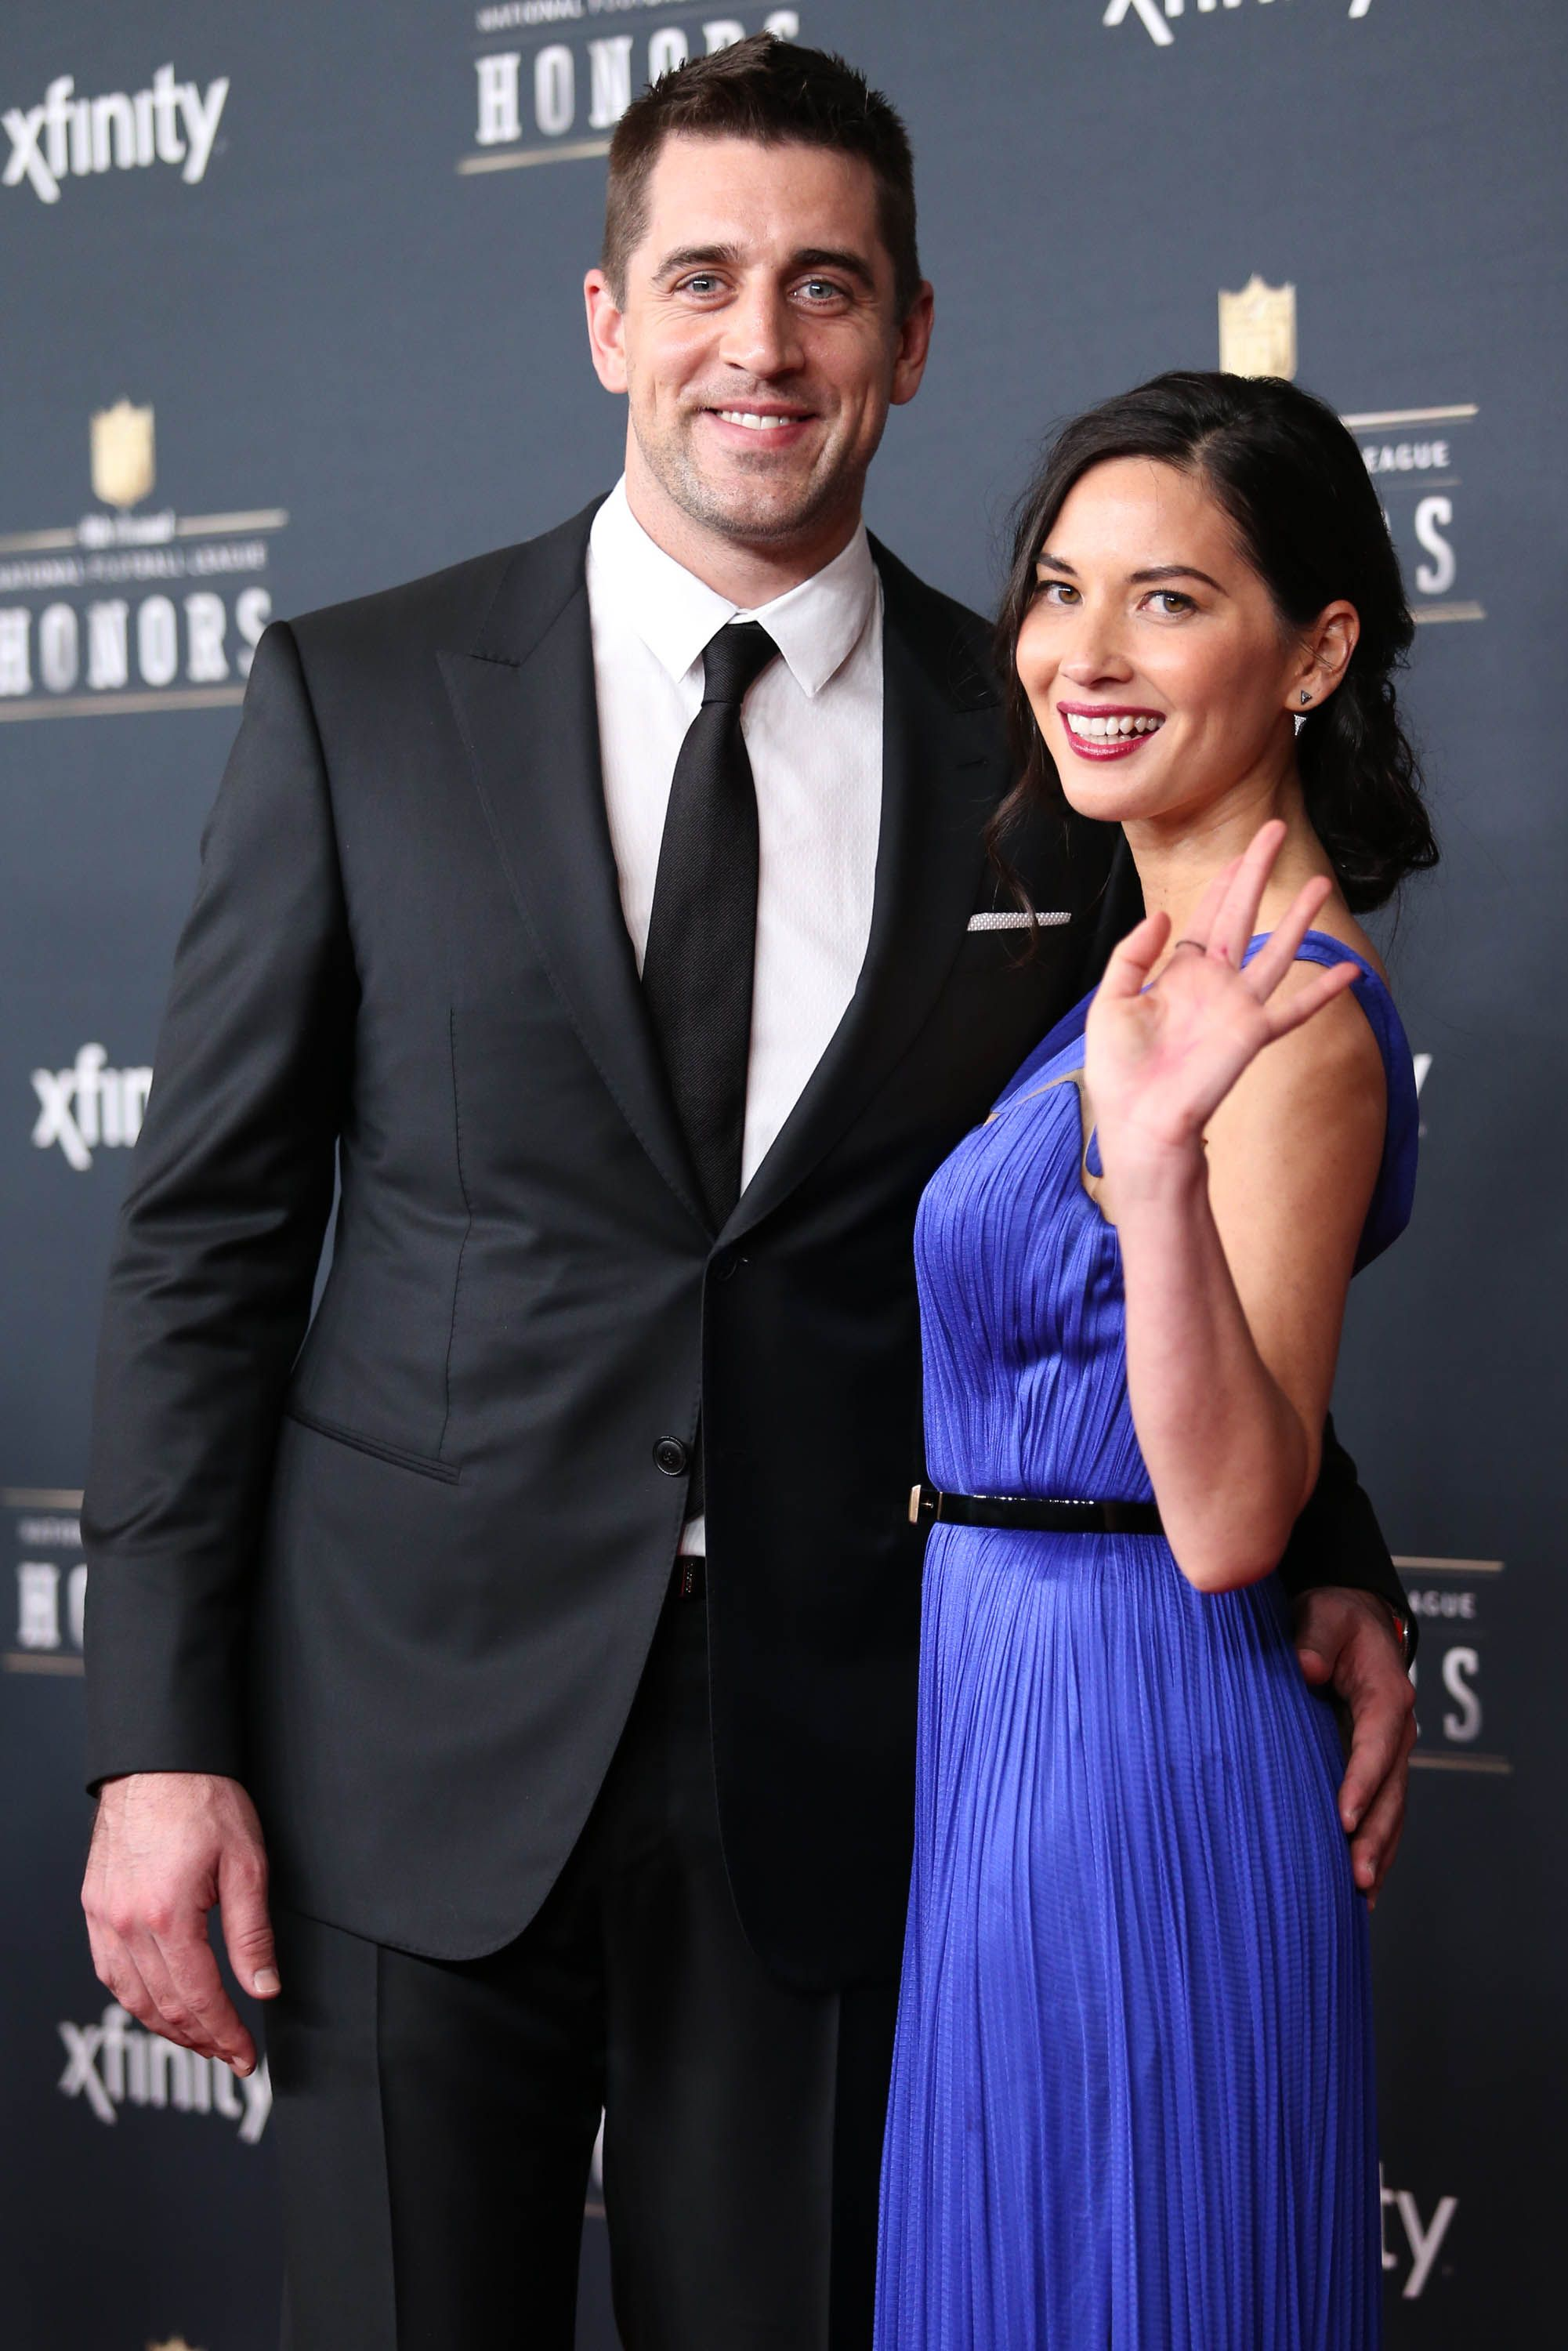 Aaron Rodgers Walks The Red Carpet With Girlfriend Olivia Munn At The Nfl Awards Show Olivia Munn Nice Dresses Celebrity Style